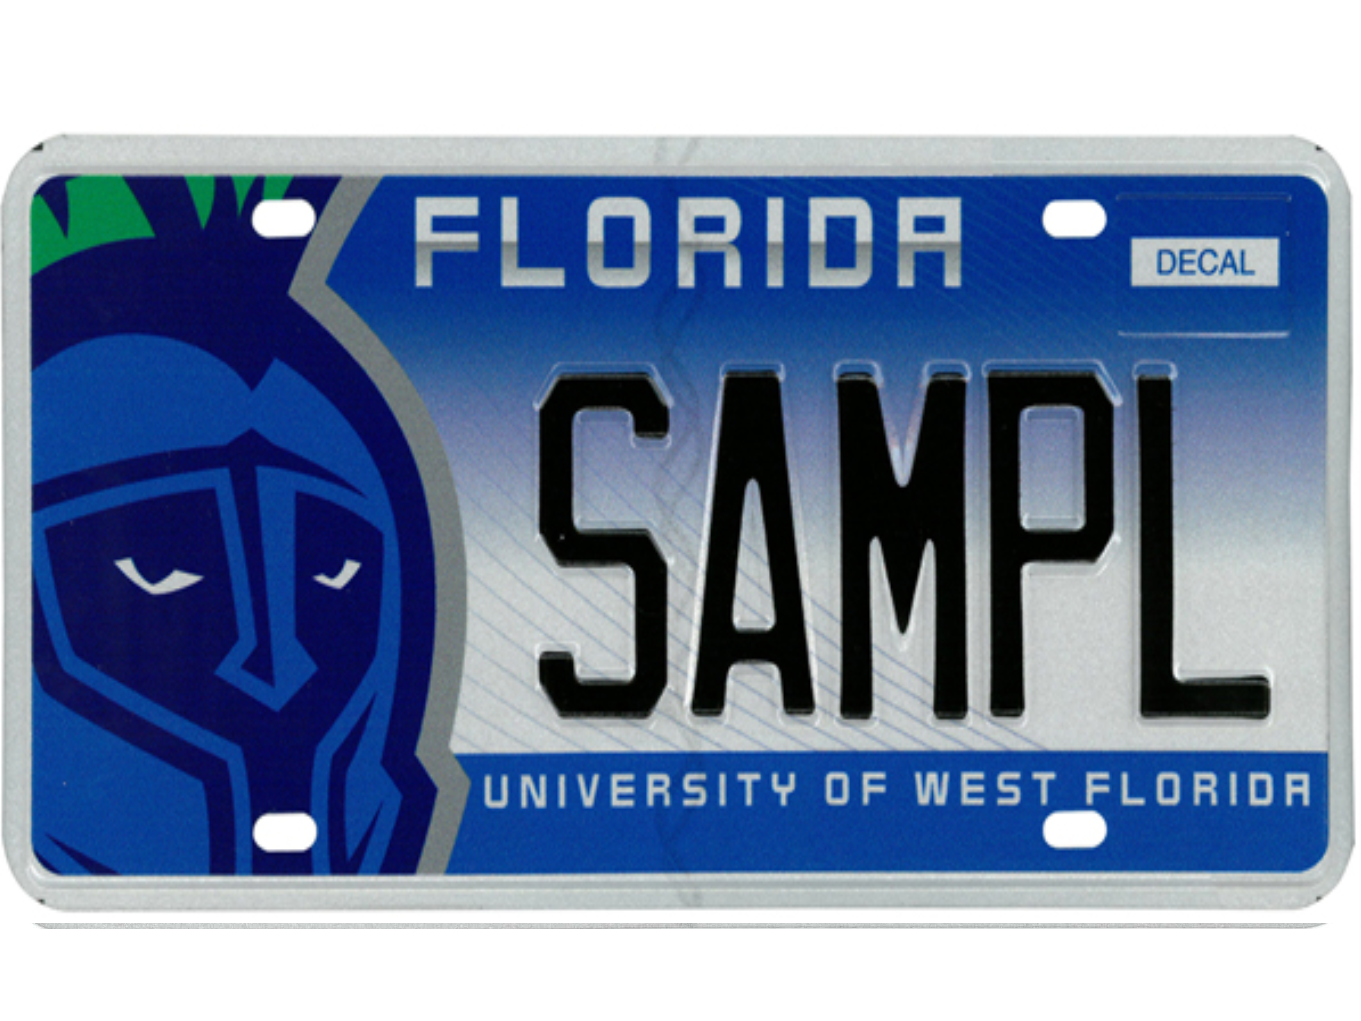 The University of West Florida license plate.